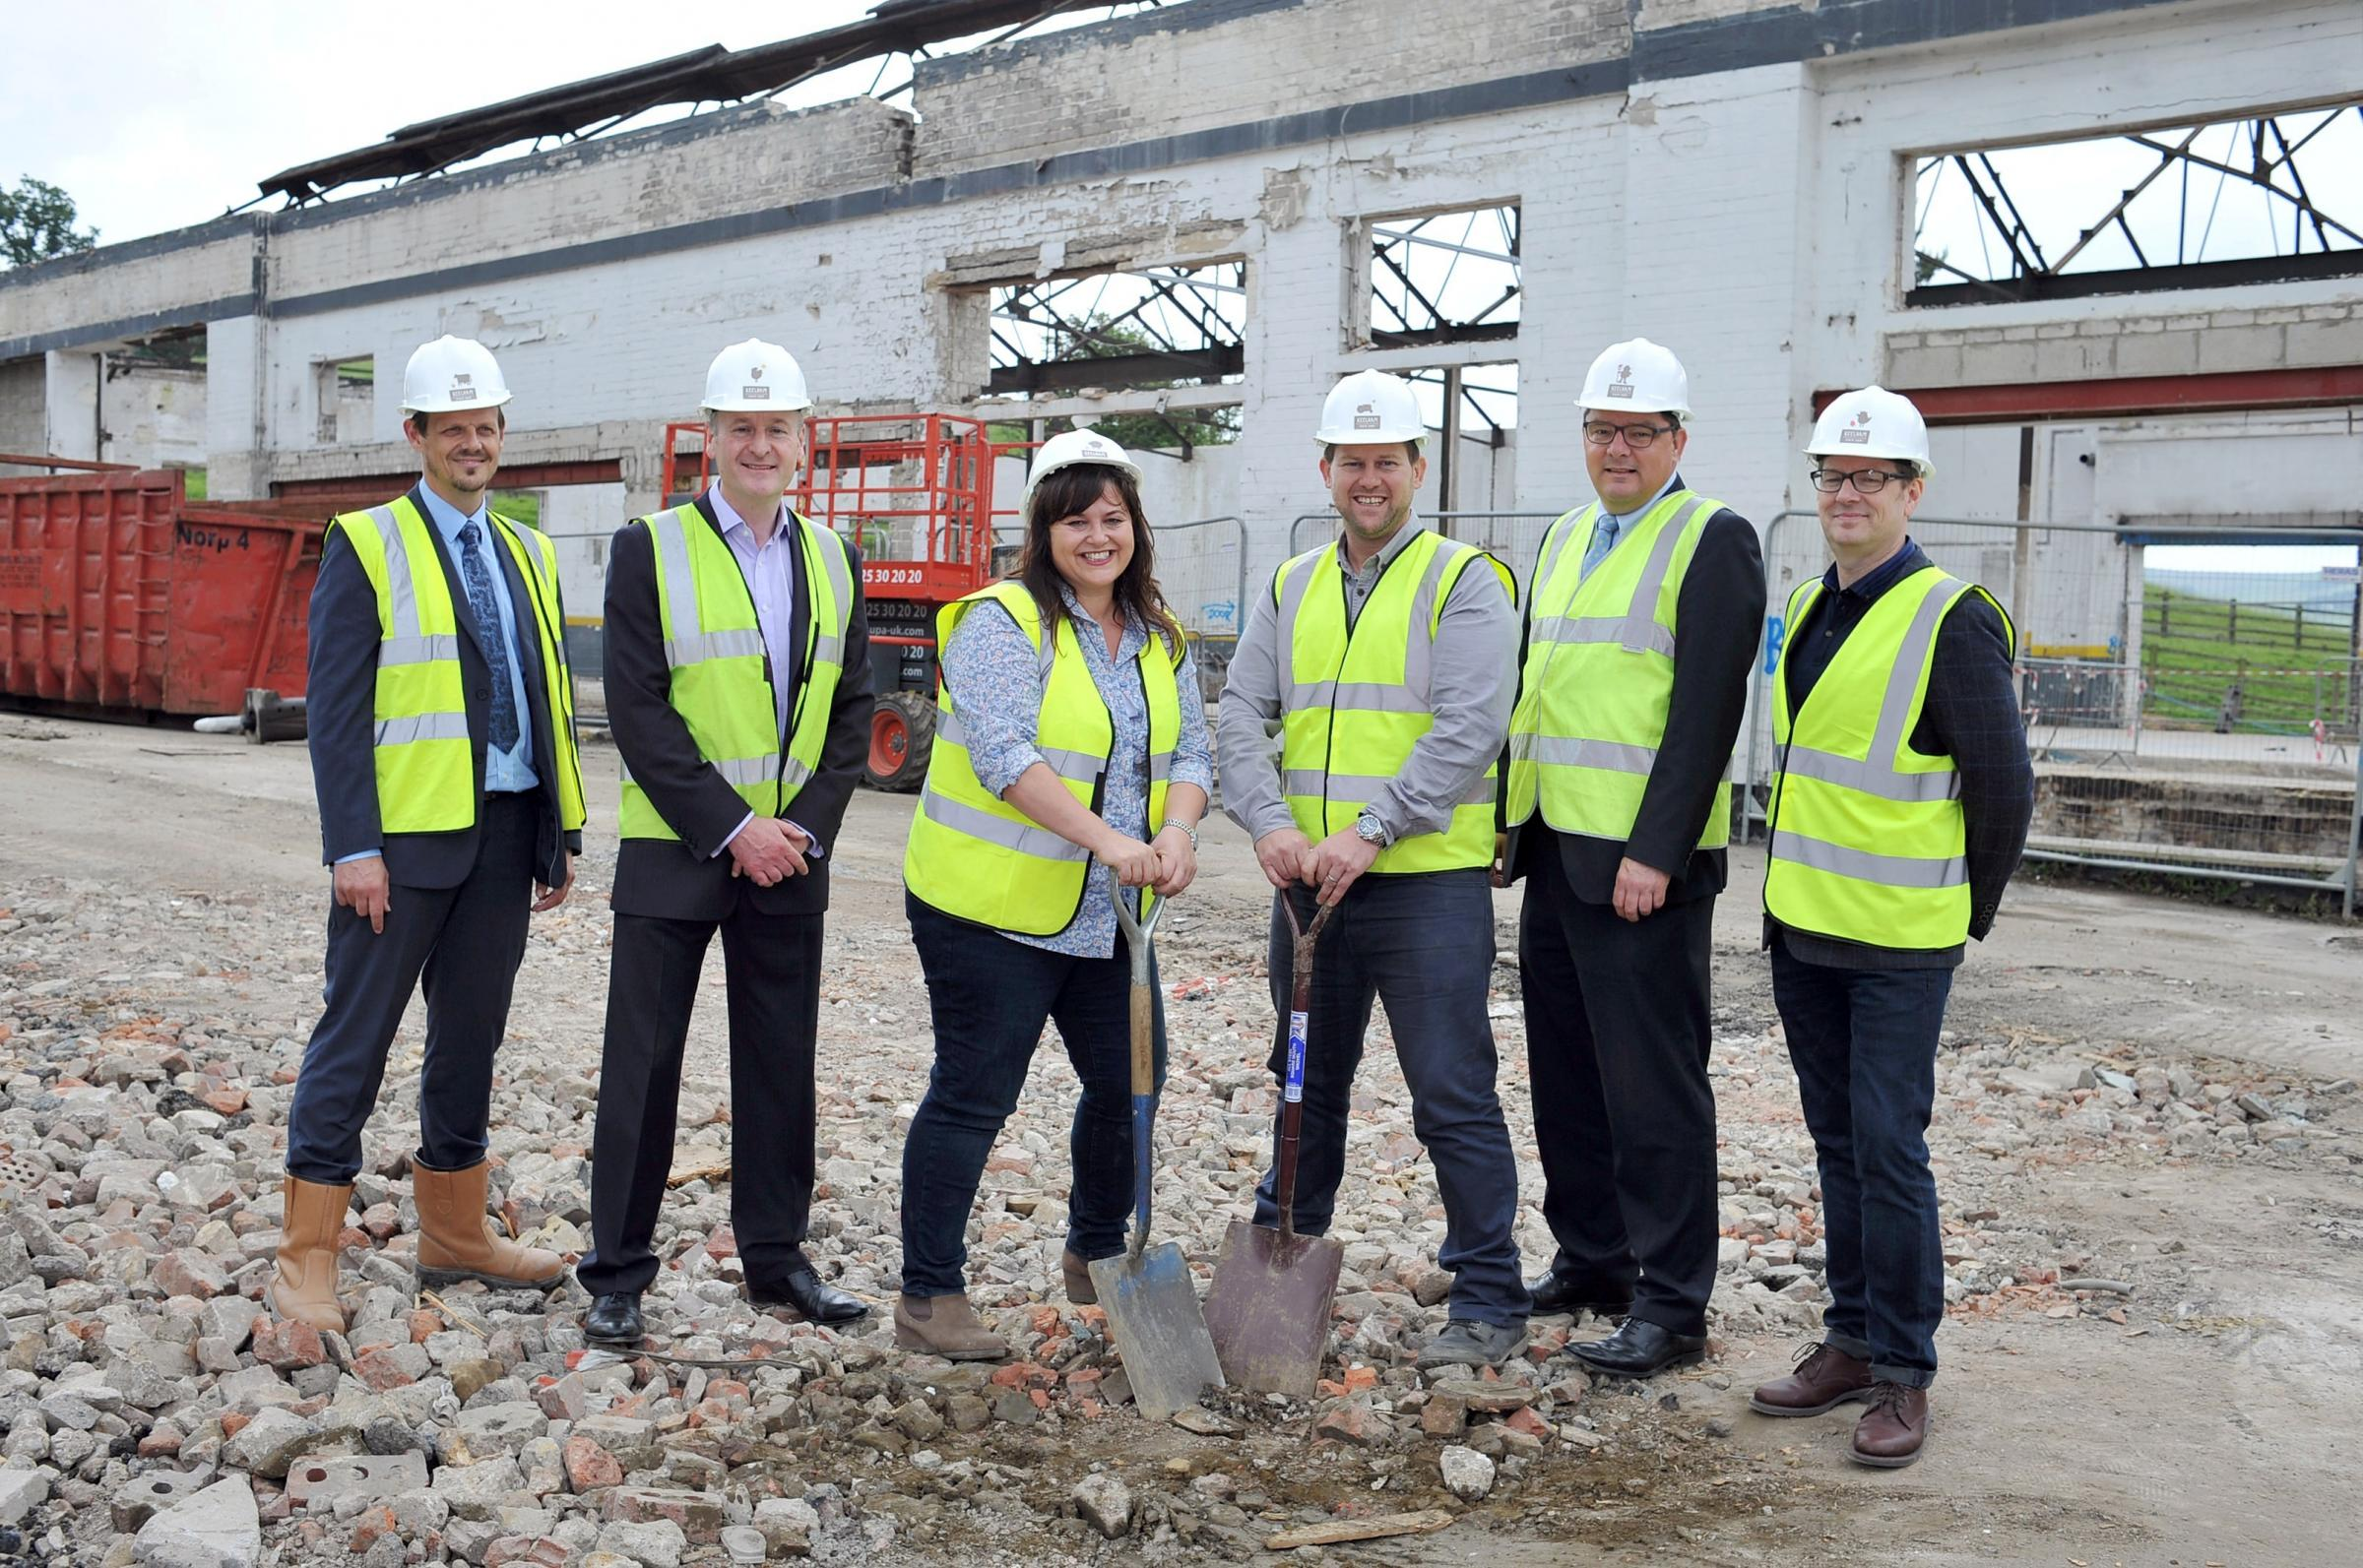 WORK STARTS: Lee Barnes, Martin Collier, Victoria Robertshaw, James Robertshaw, Gary Smith and Ian Thompson. Picture by Roger Moody